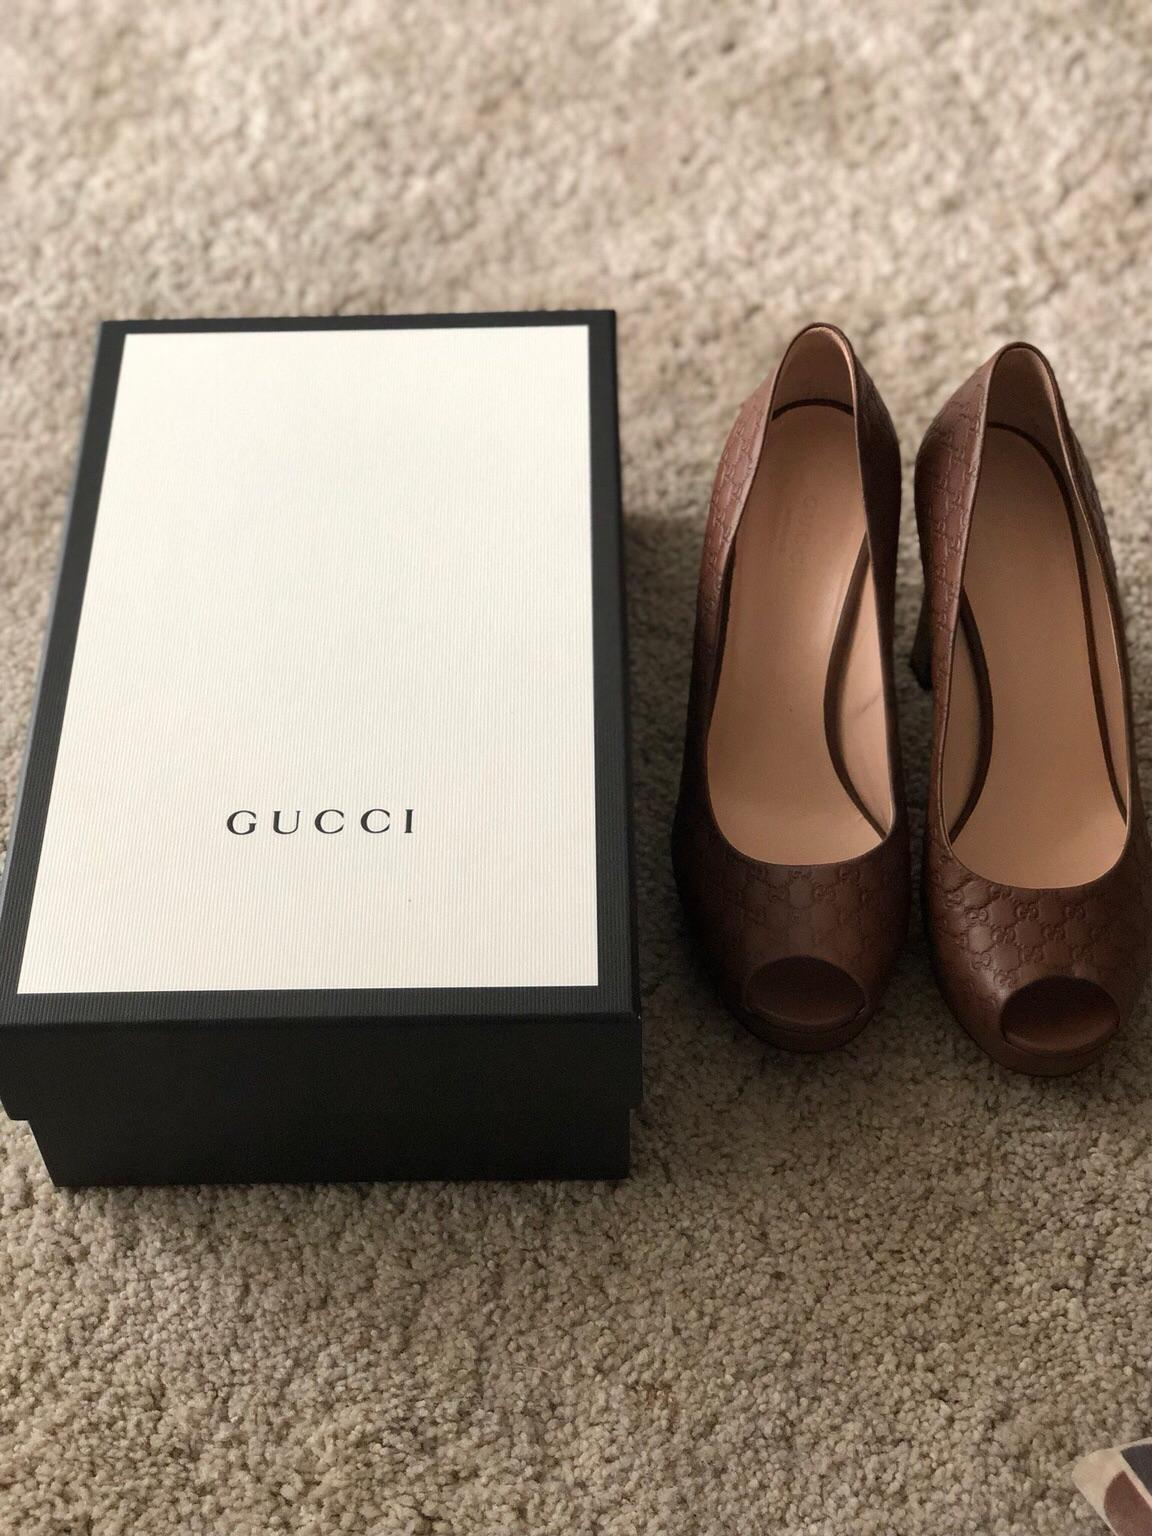 9ce0ac35f44 Gucci heels in M3 Salford for £200.00 for sale - Shpock